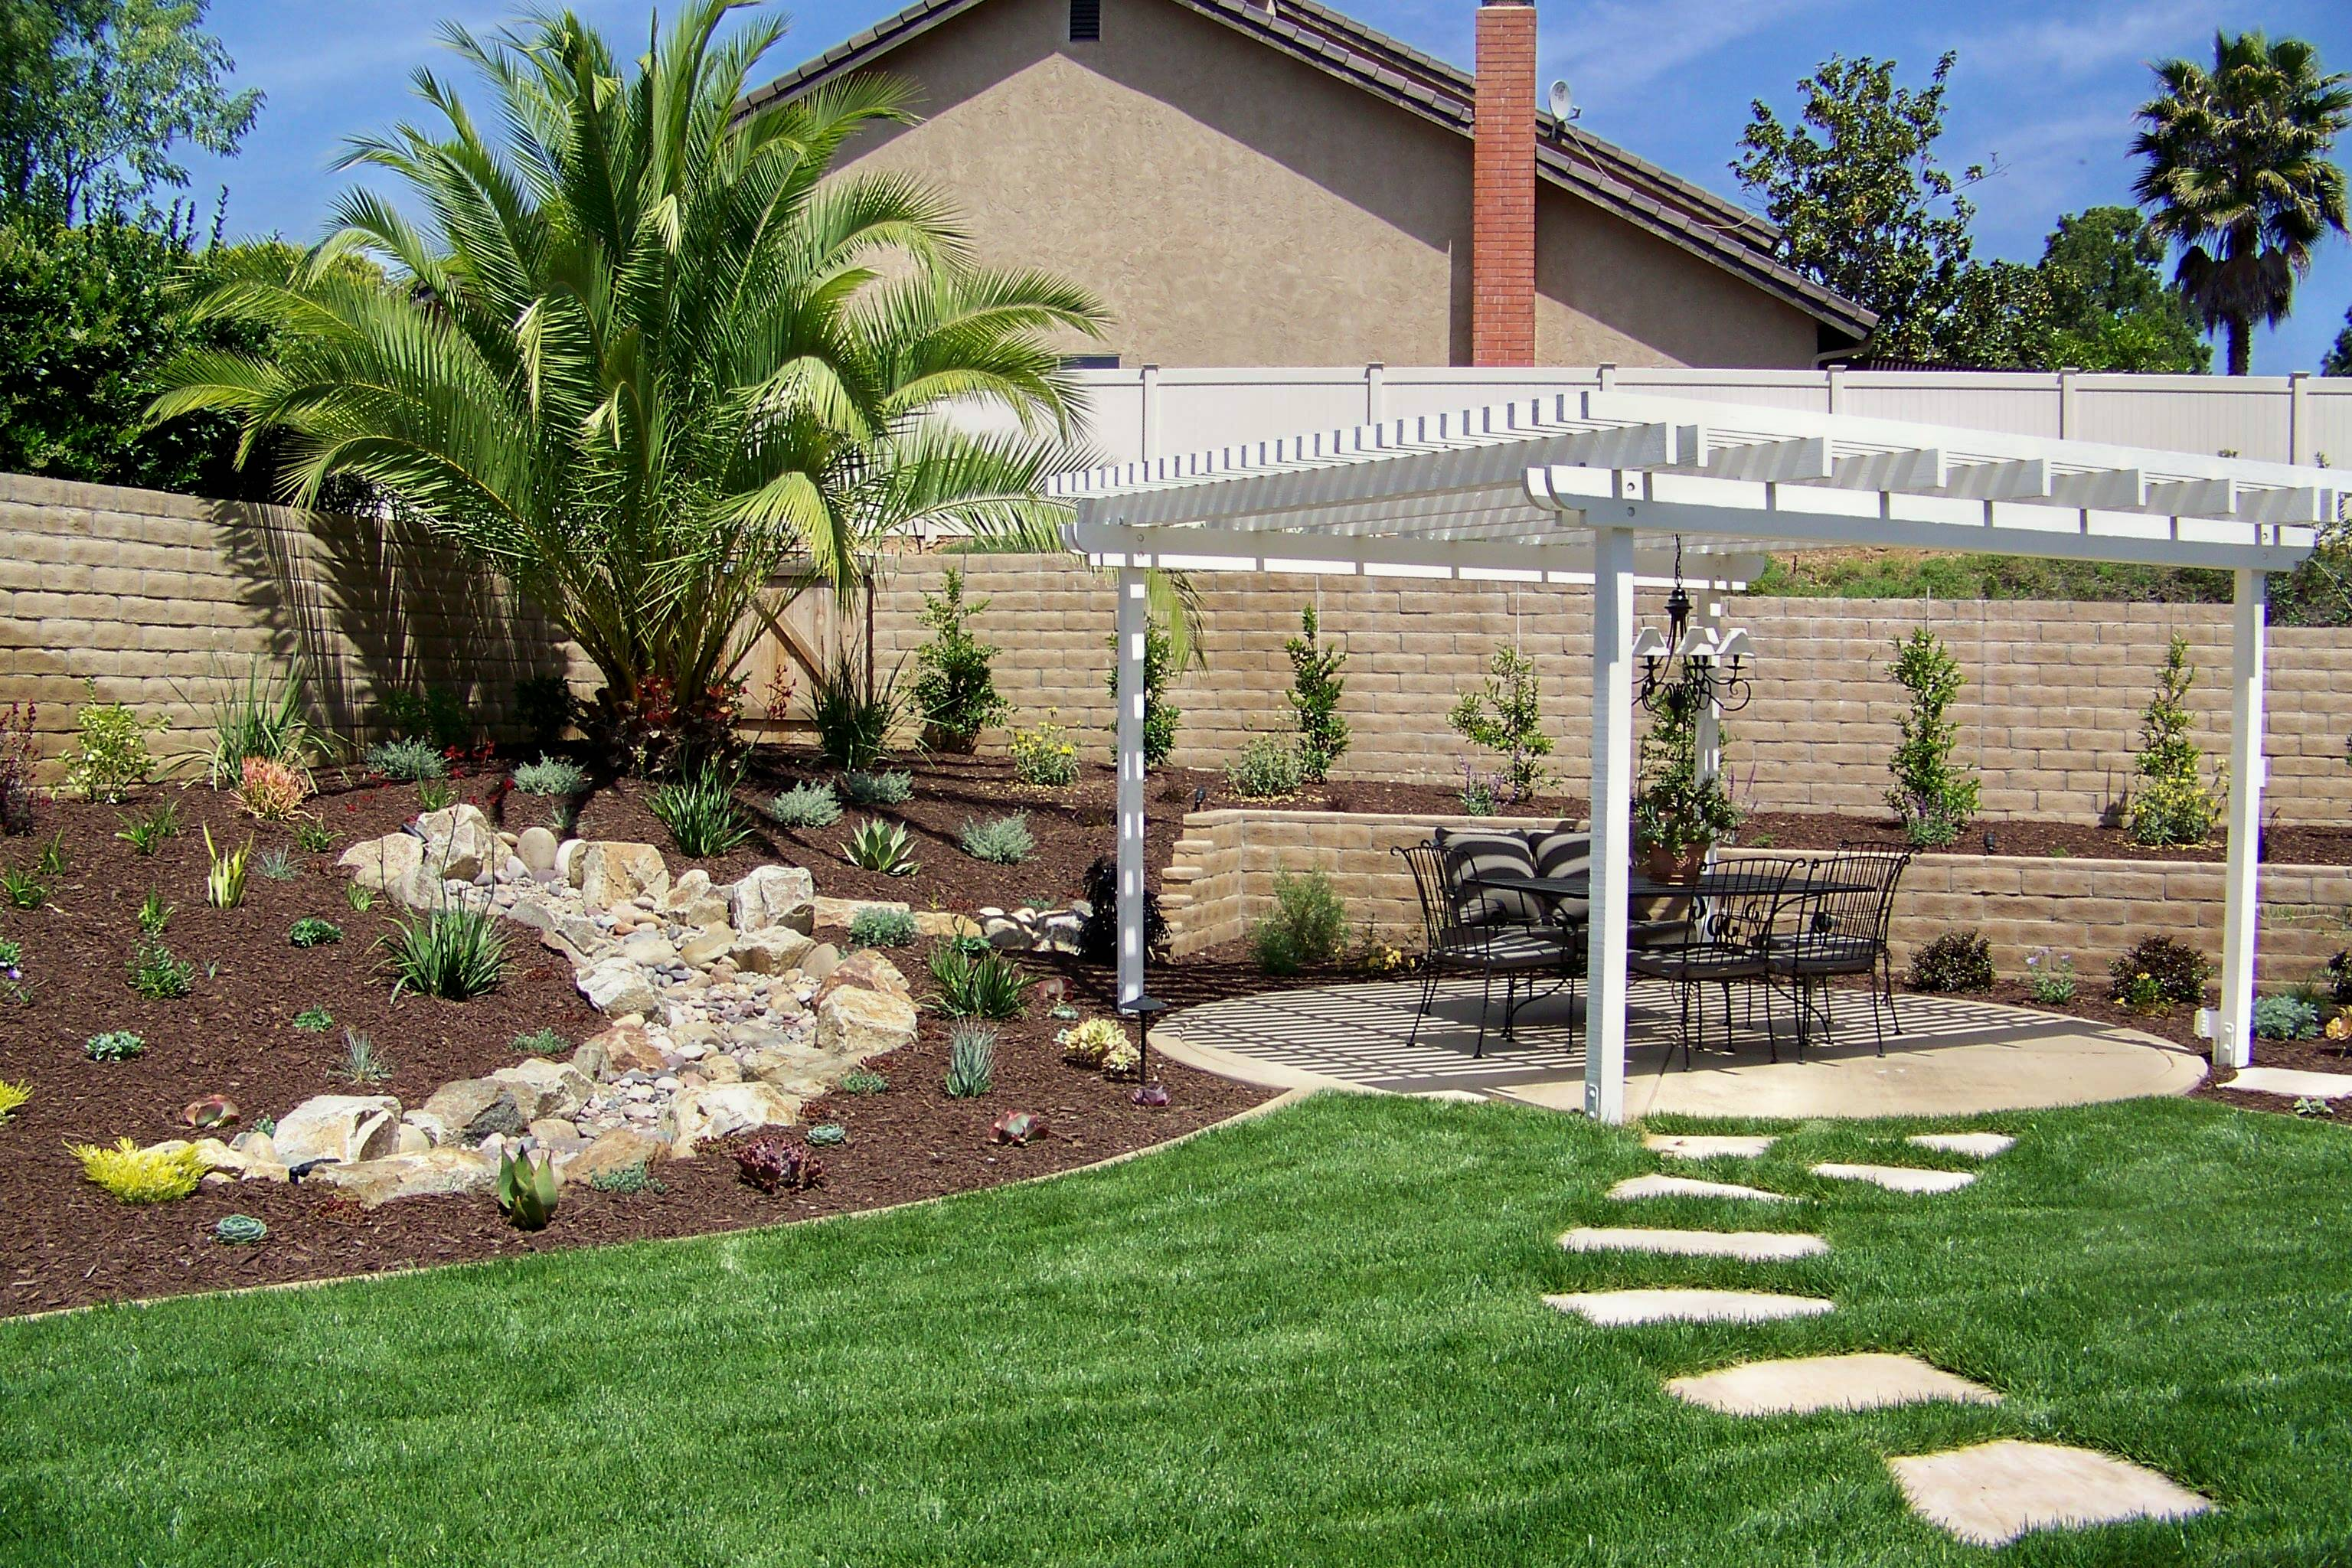 Backyard Design San Diego san diego landscape design western outdoor design and build Pergola Or Patio Cover Two Terms For The Same Element Building This From Redwood Is The Best Option And To Avoid All Maintenance Aluminum Is Also A